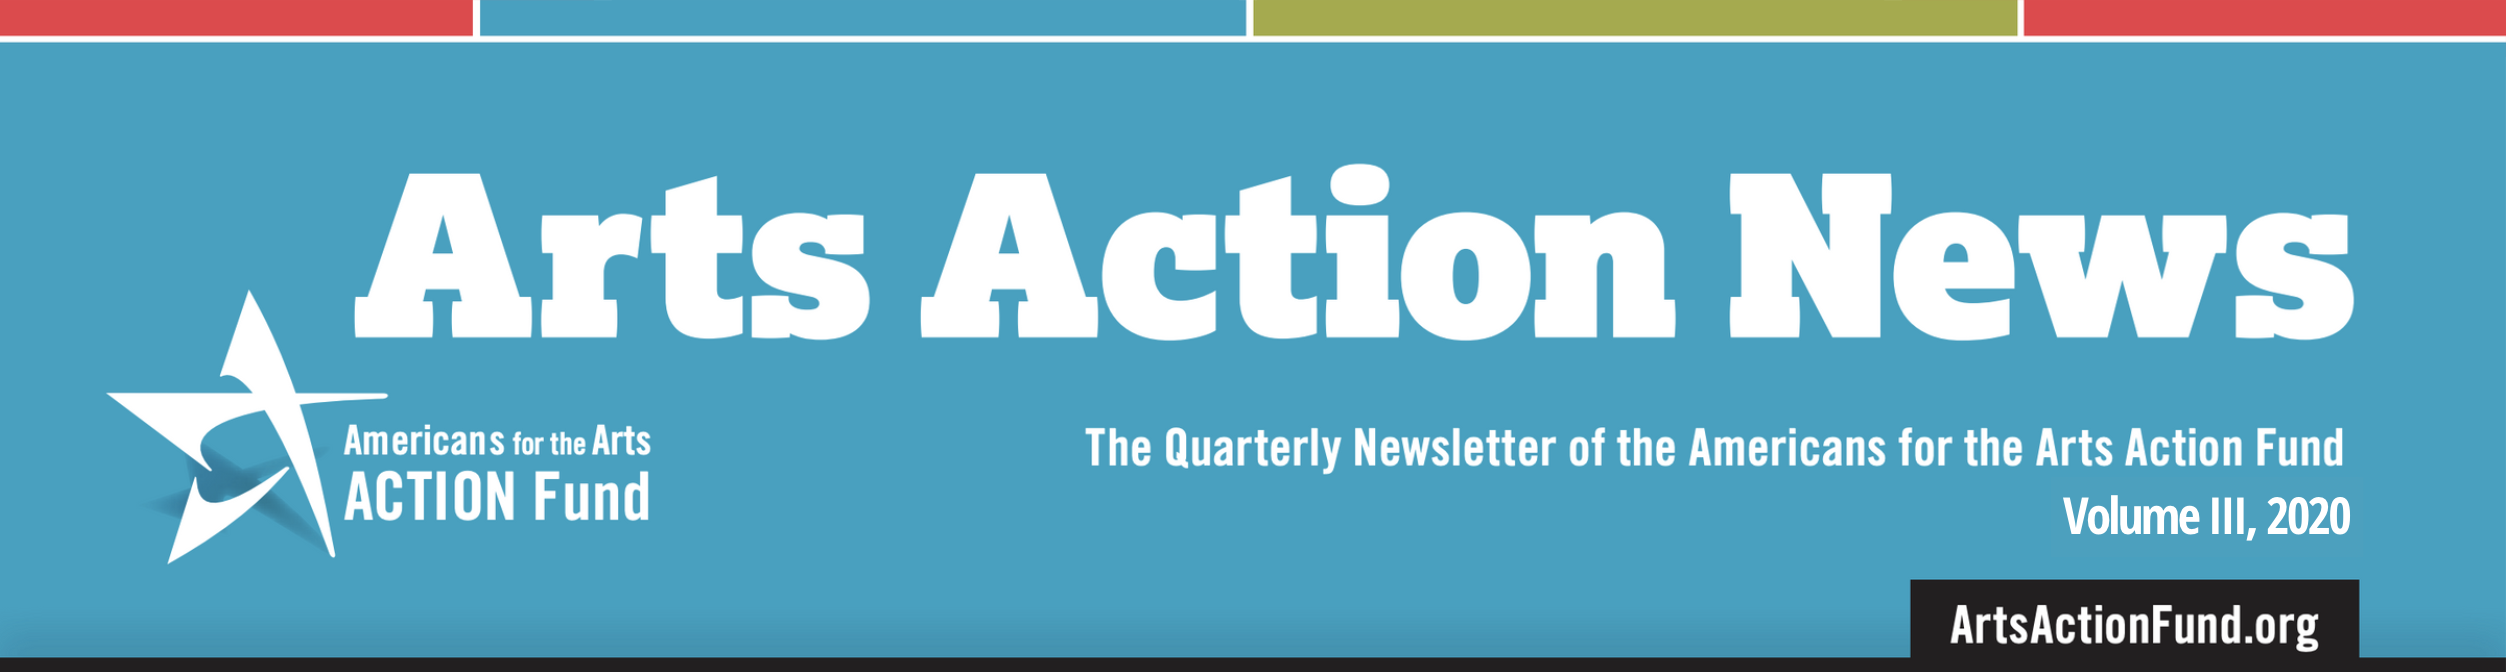 Arts Action News, The Quarterly Newsletter of the Americans for the Arts Action Fund, Volume III, 2020